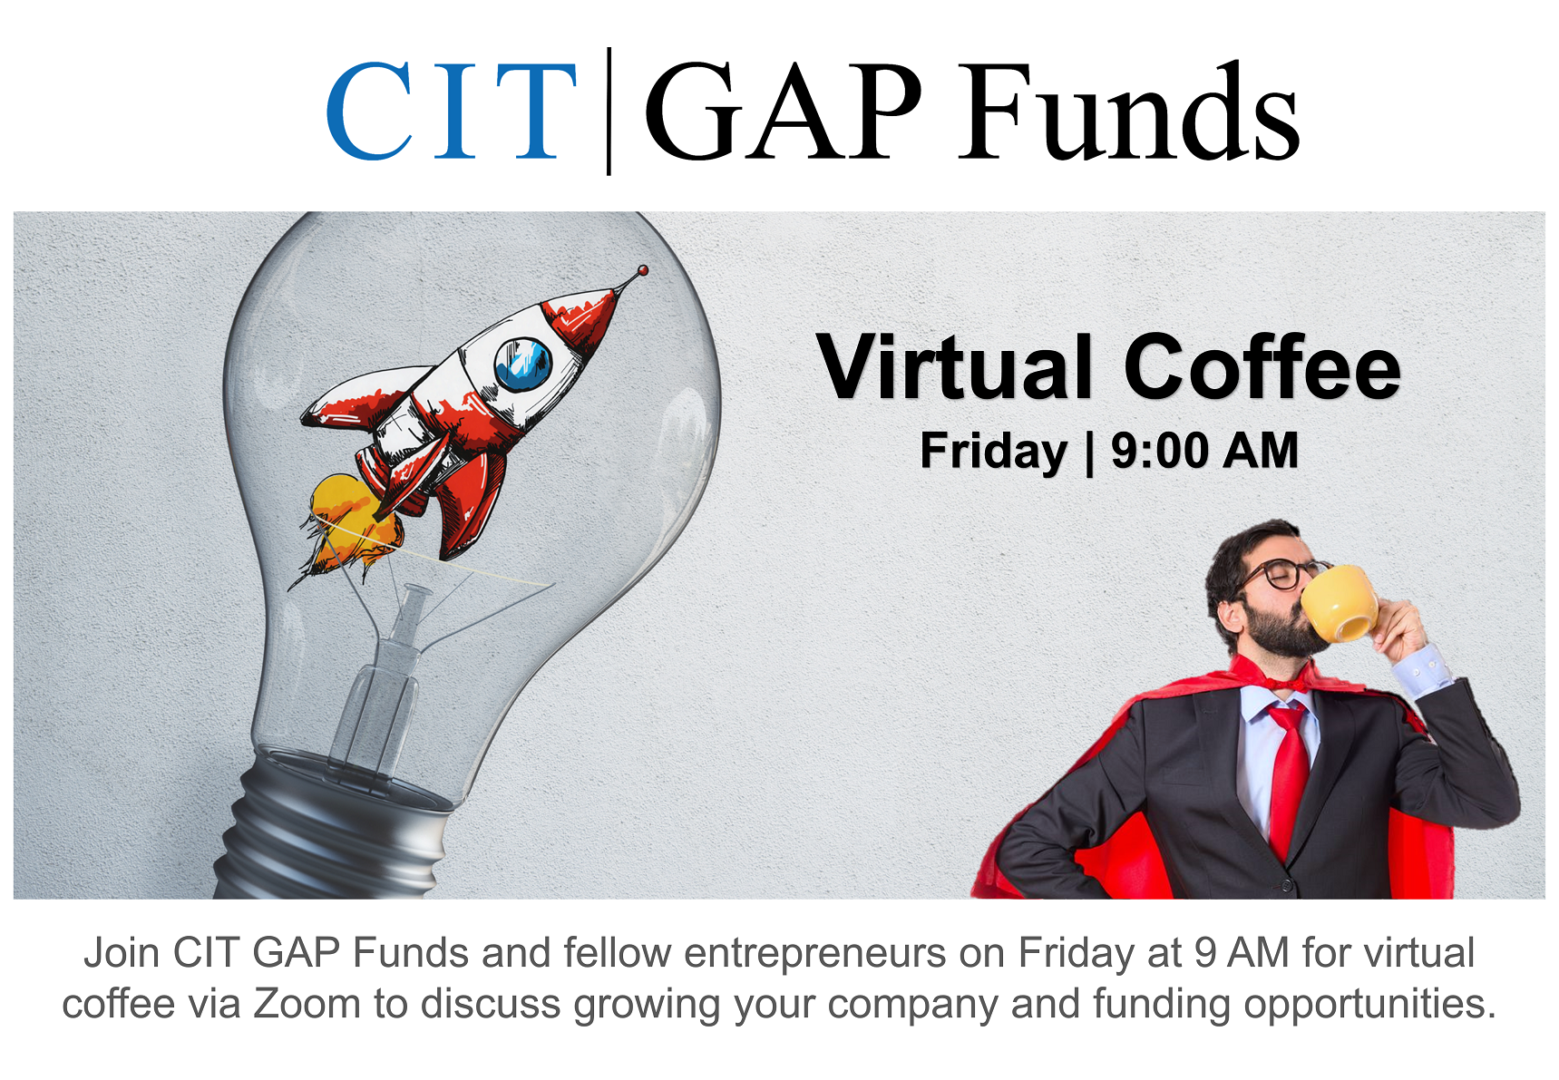 GAP Virtual Coffee Graphic FINAL No Treatment with Evergreen Event Information